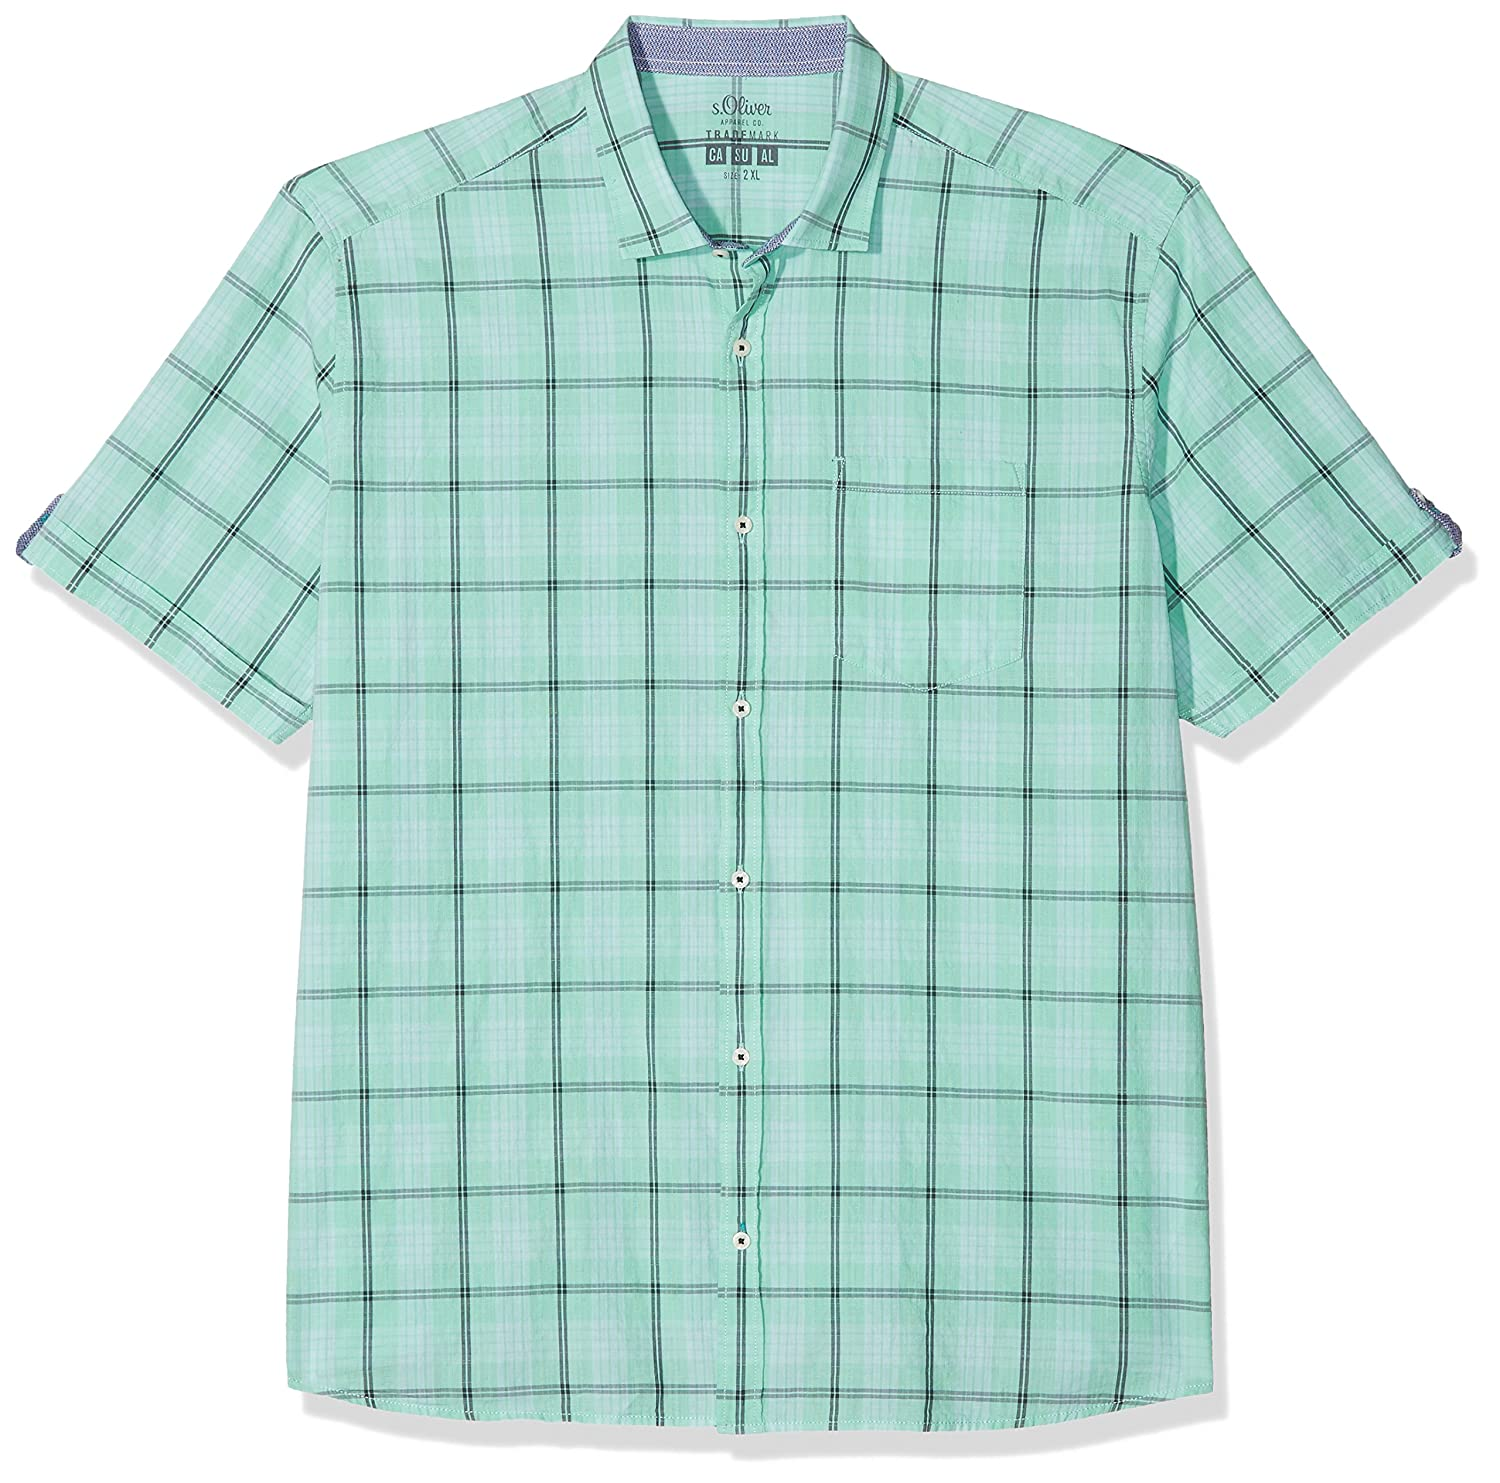 15.803.22.2200, Camisa Casual para Hombre, Turquesa (Pale Green 66N8), XXXL s.Oliver